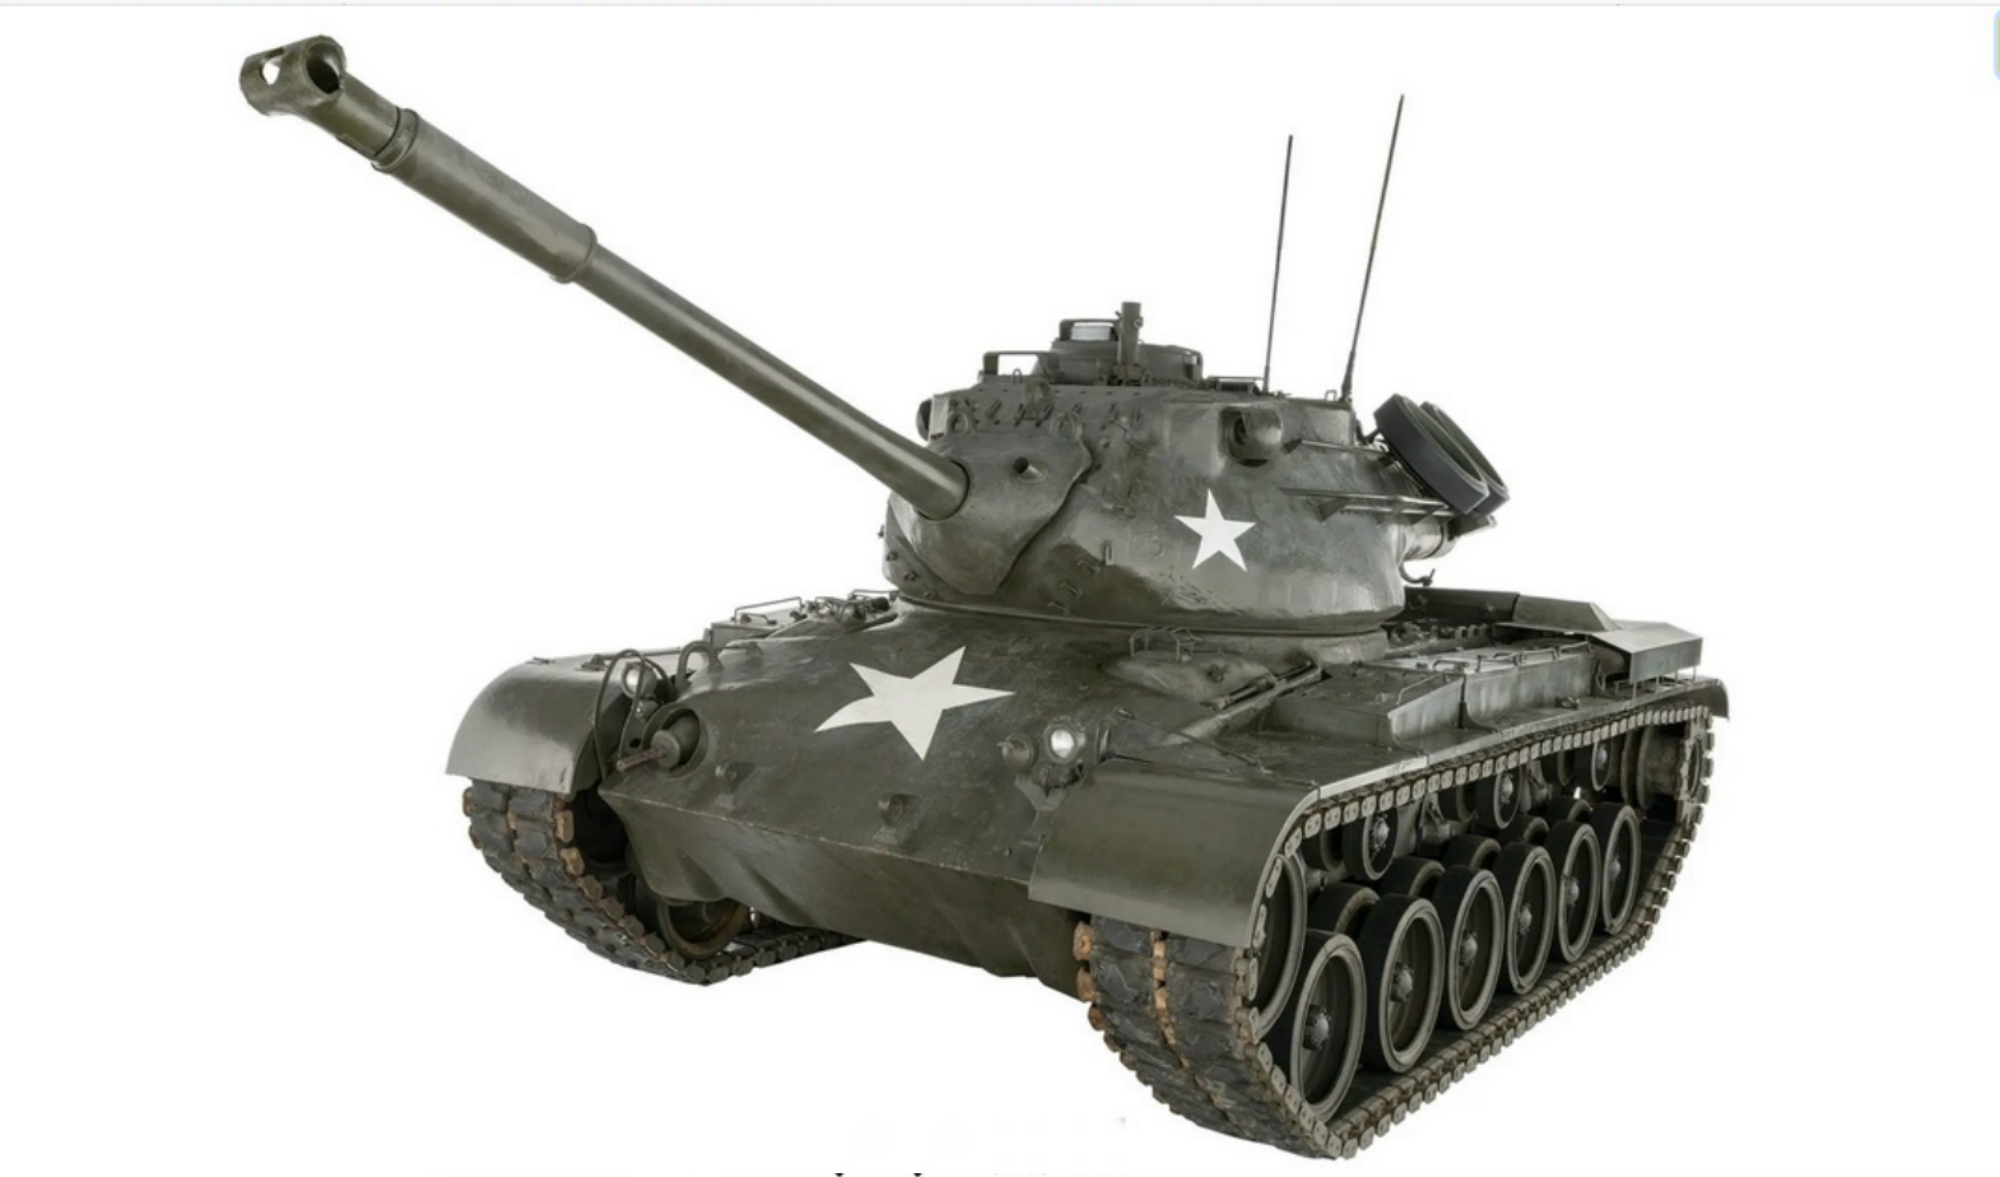 The M47 Patton Main Battle Tank